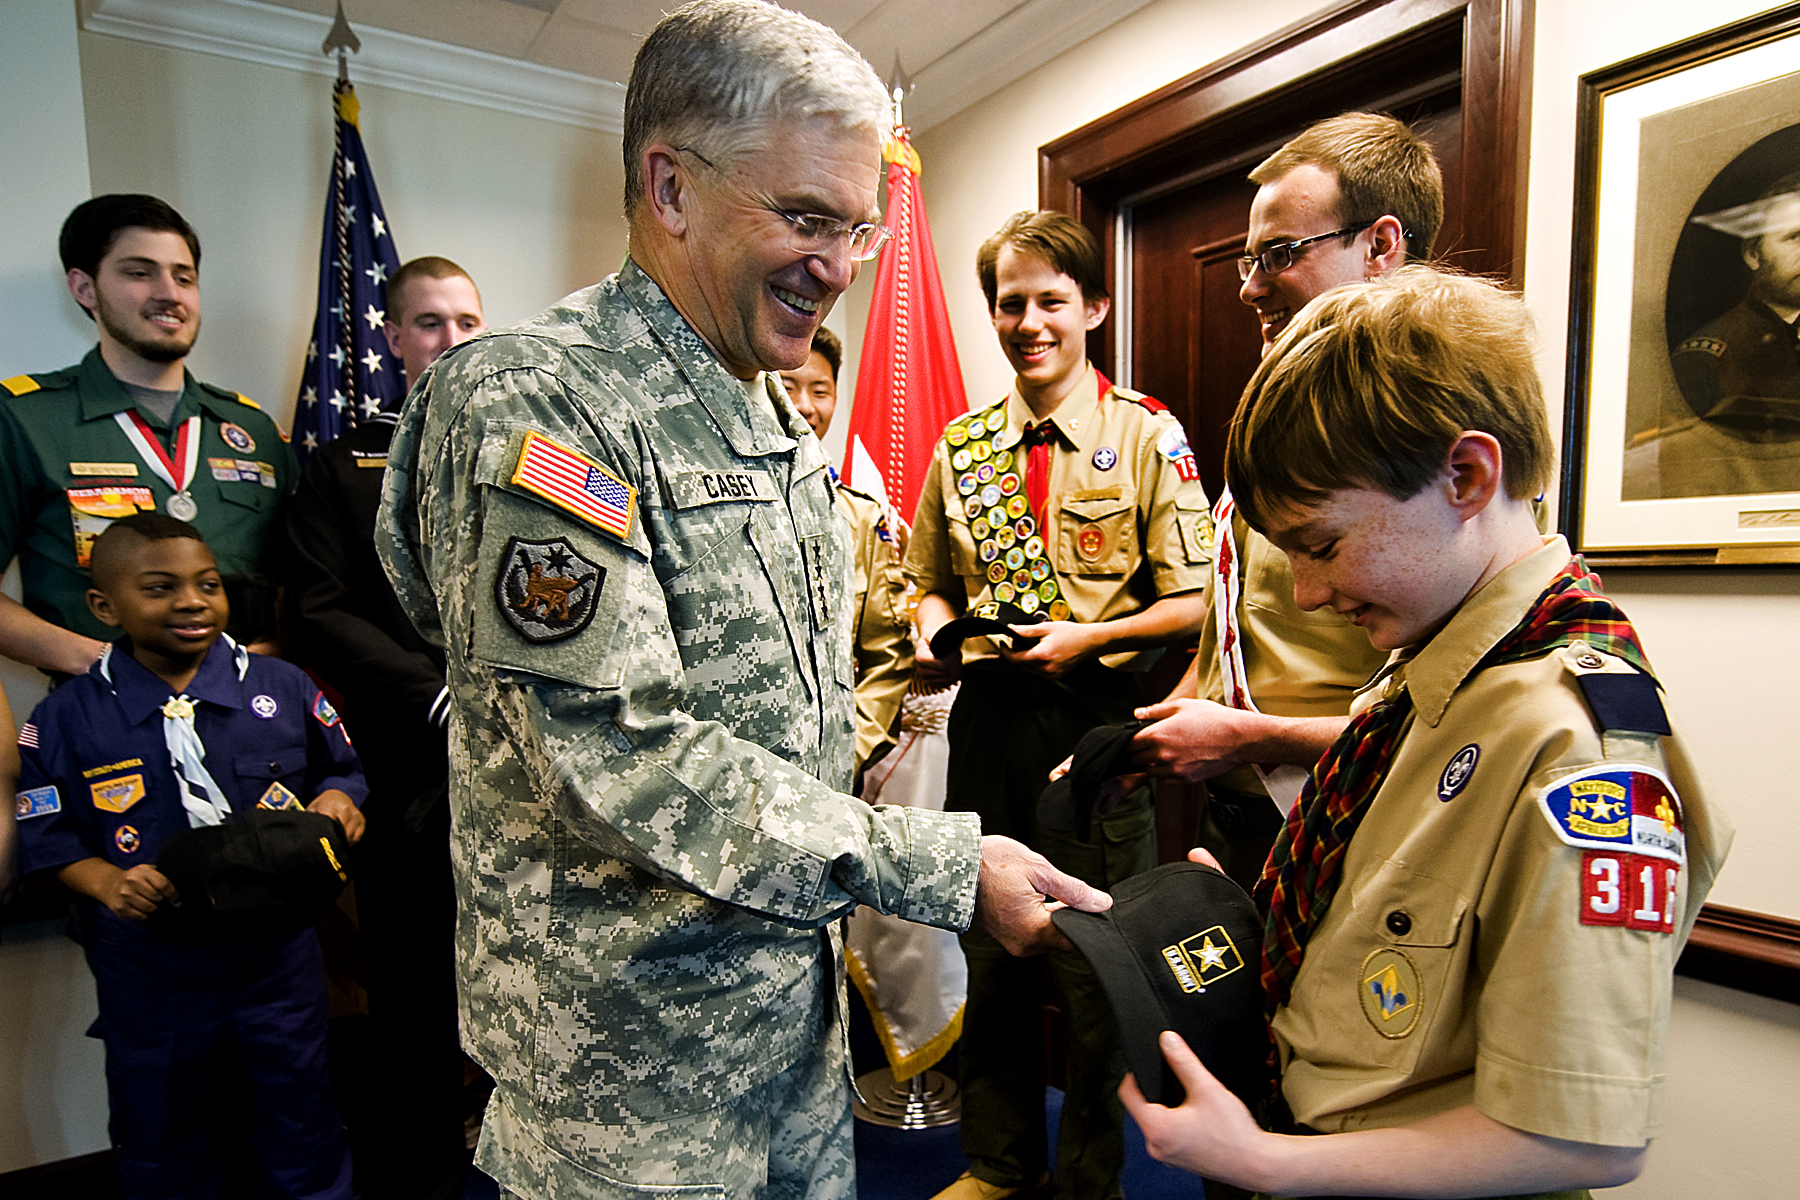 a look at the boy scouts of america Usa first look boy scouts will admit girls in 2018 boy scouts of america has steered through monumental changes in recent years it's announcement that it will.